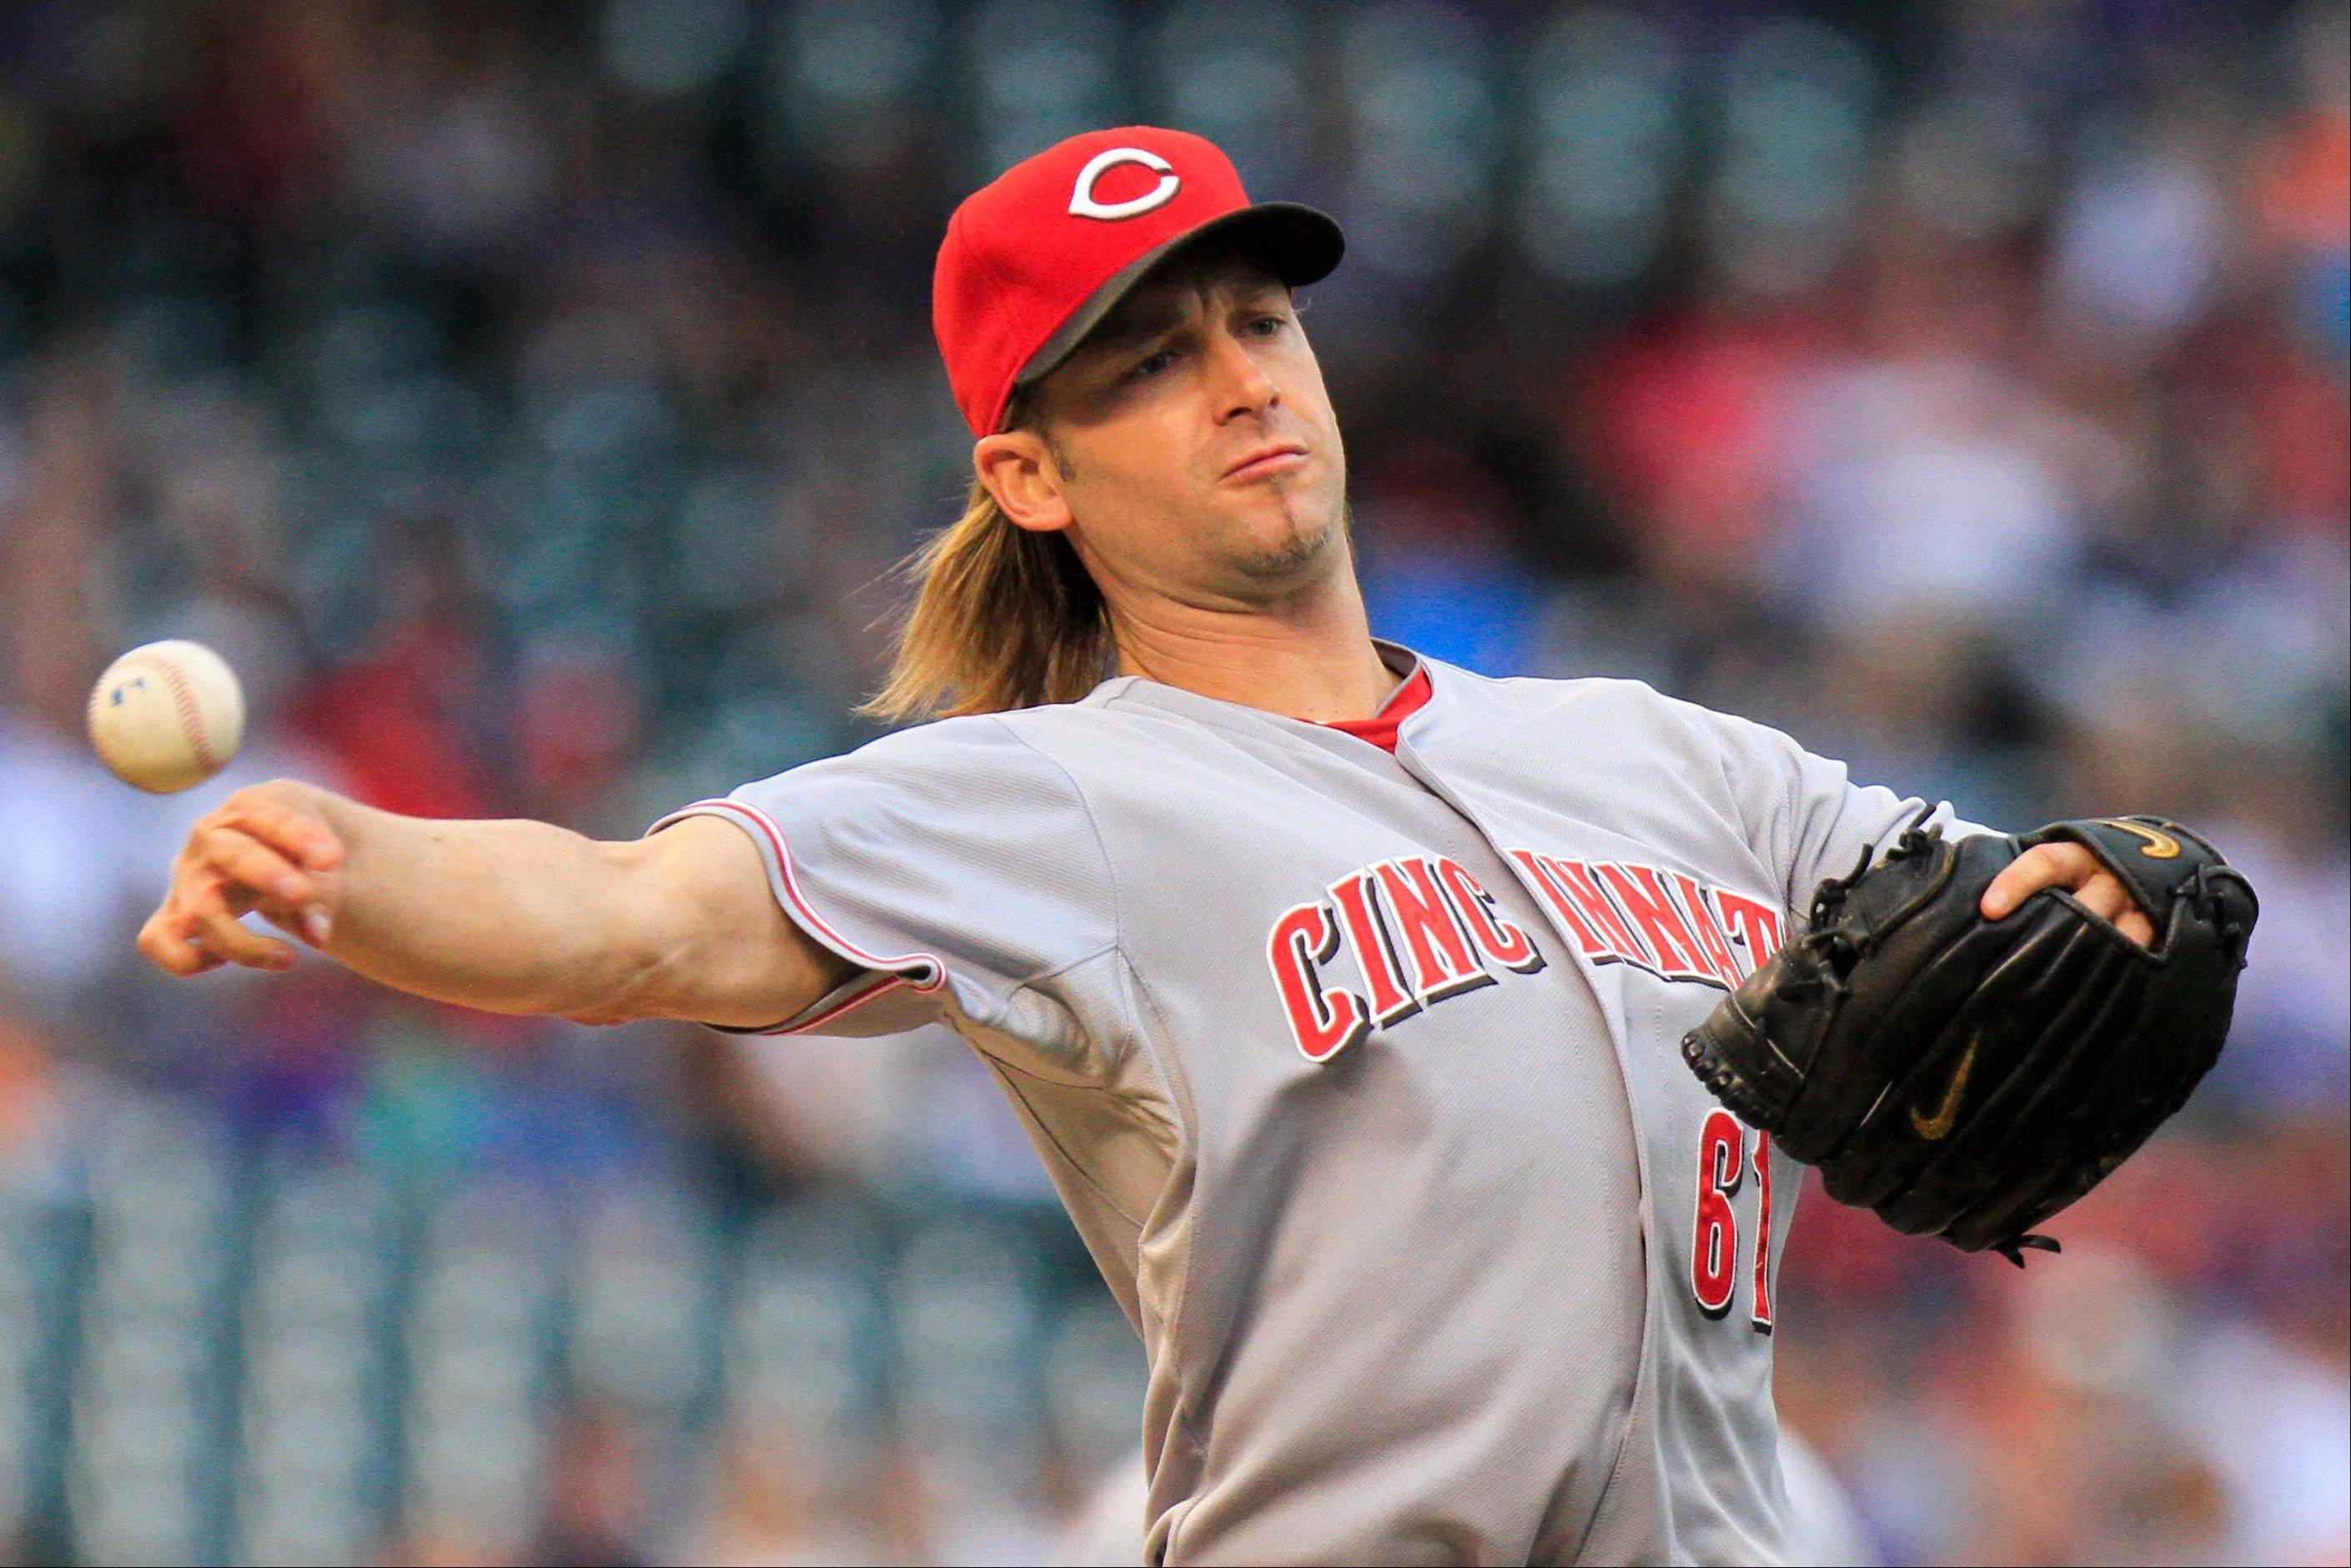 Reds starting pitcher Bronson Arroyo throws out the Rockies' Dexter Fowler at first Friday night in Denver.